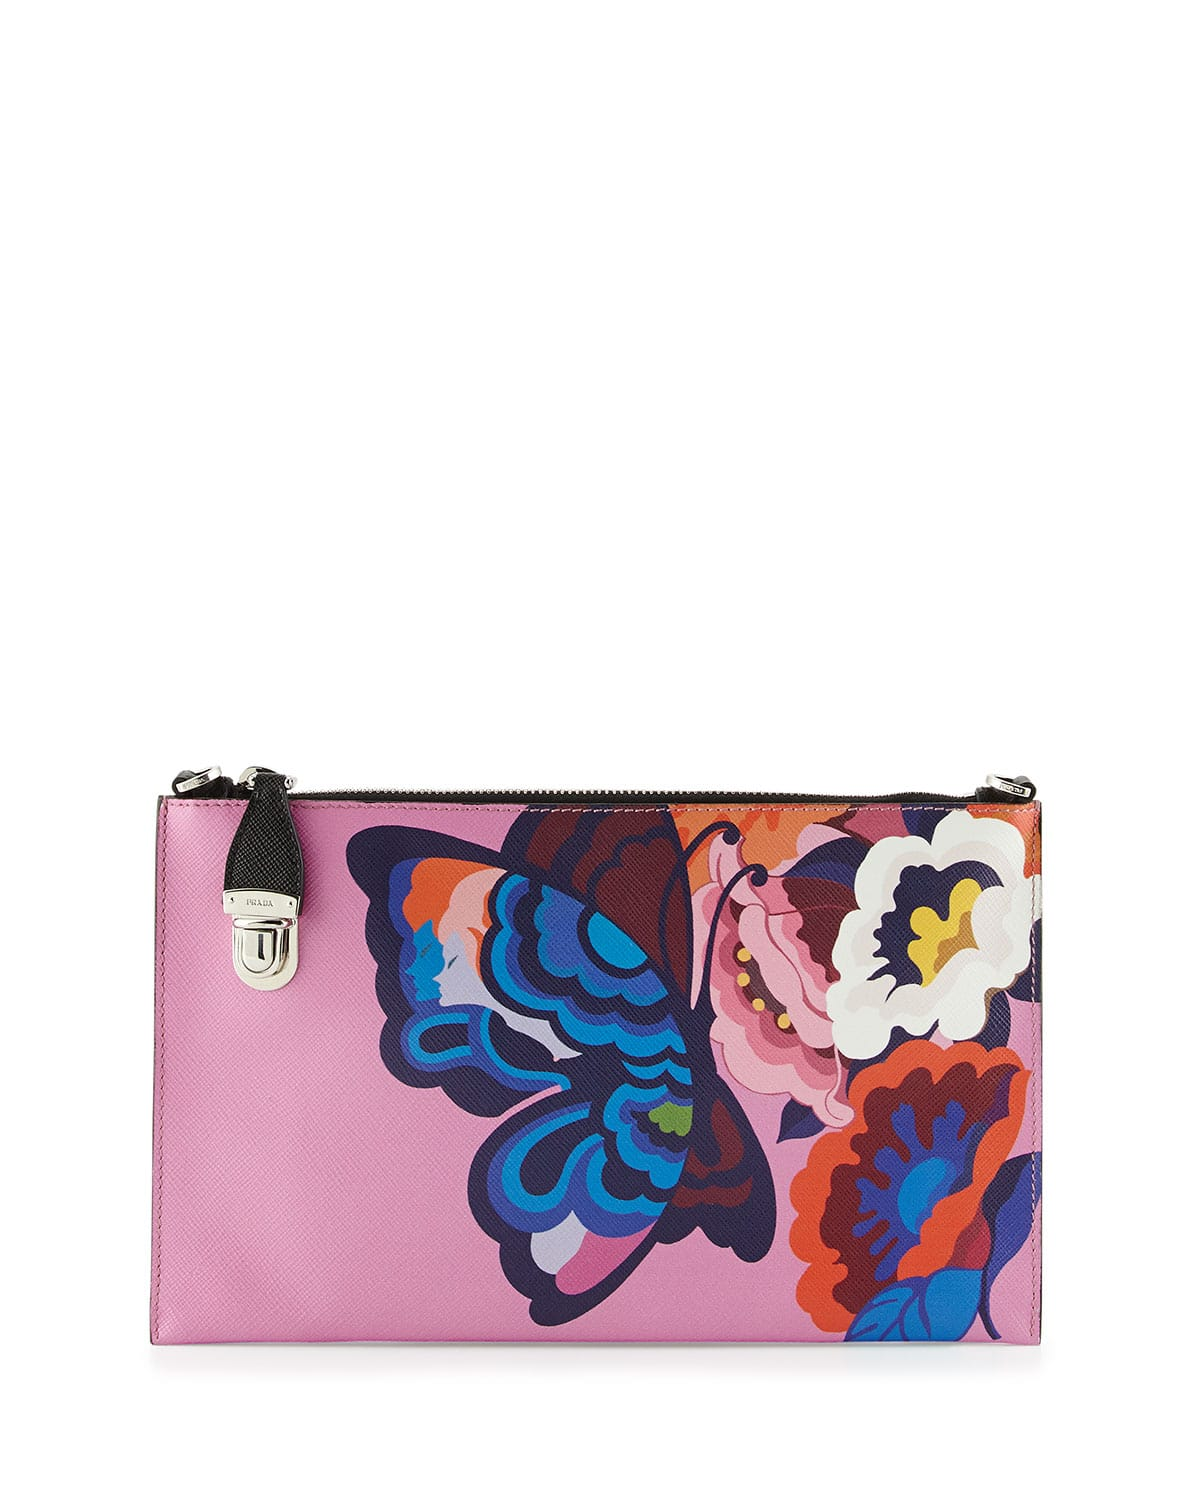 prada printed satin leather evening bag